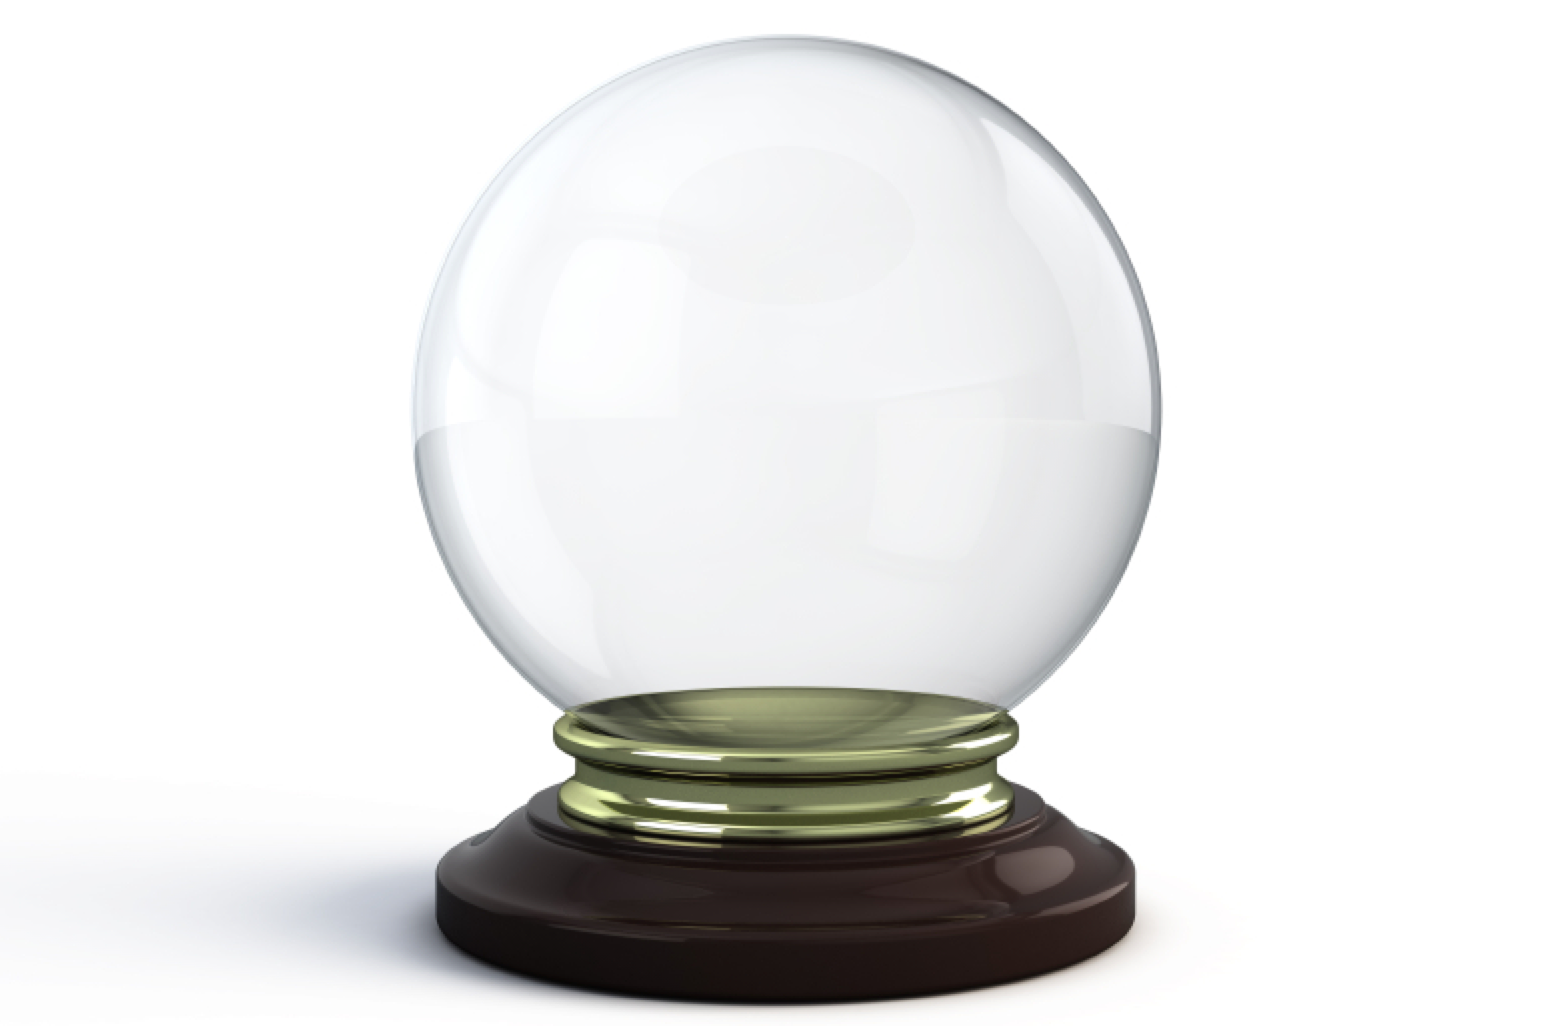 Crystal Ball Predictions